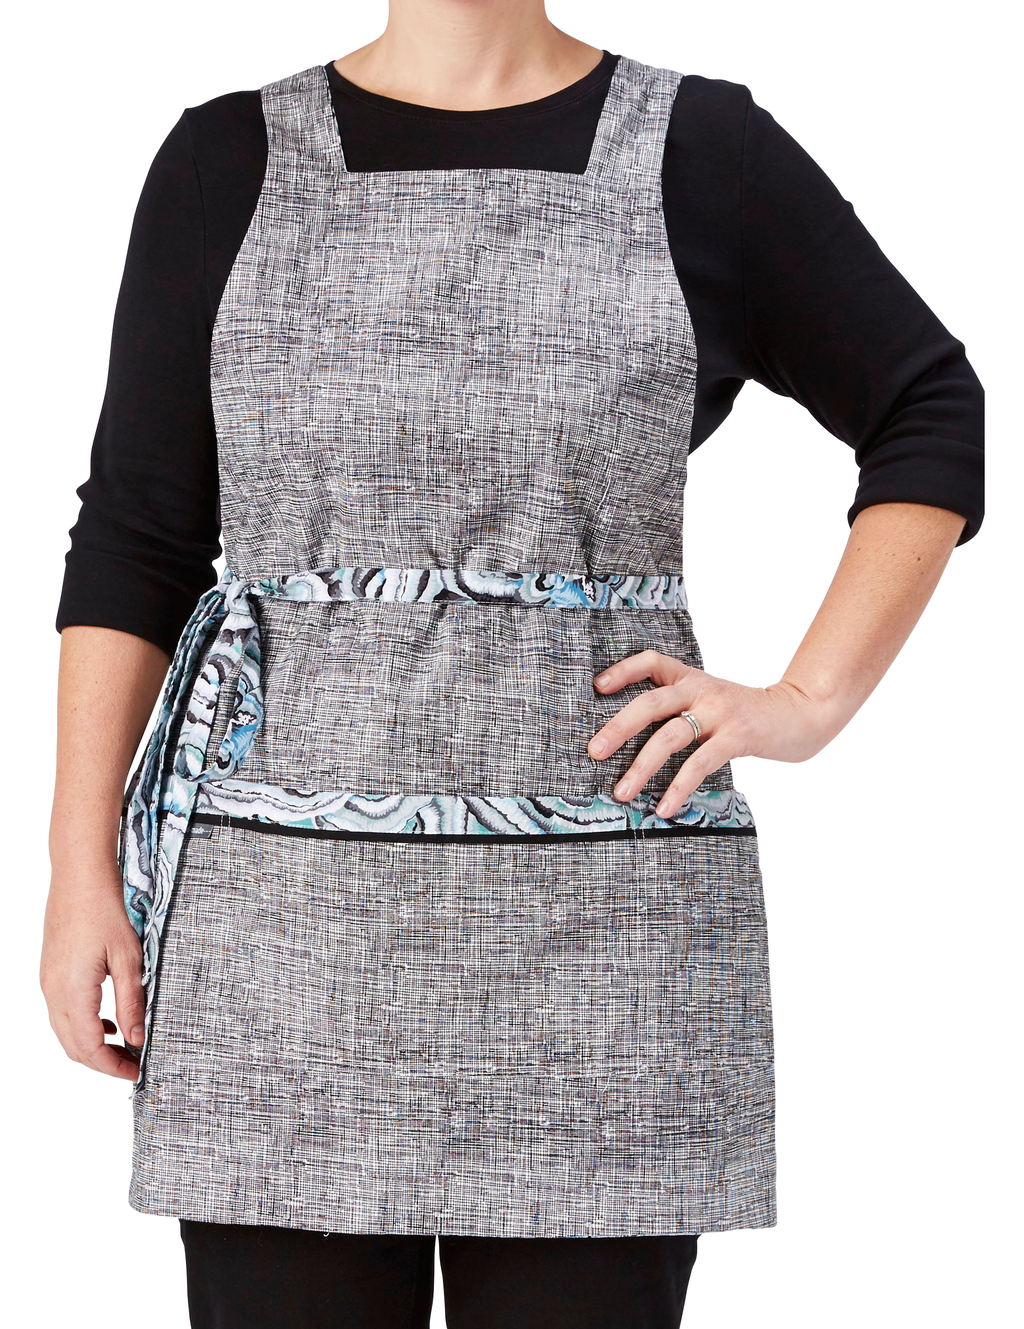 Woman's Reversible Kitchen Apron in Black & White Print